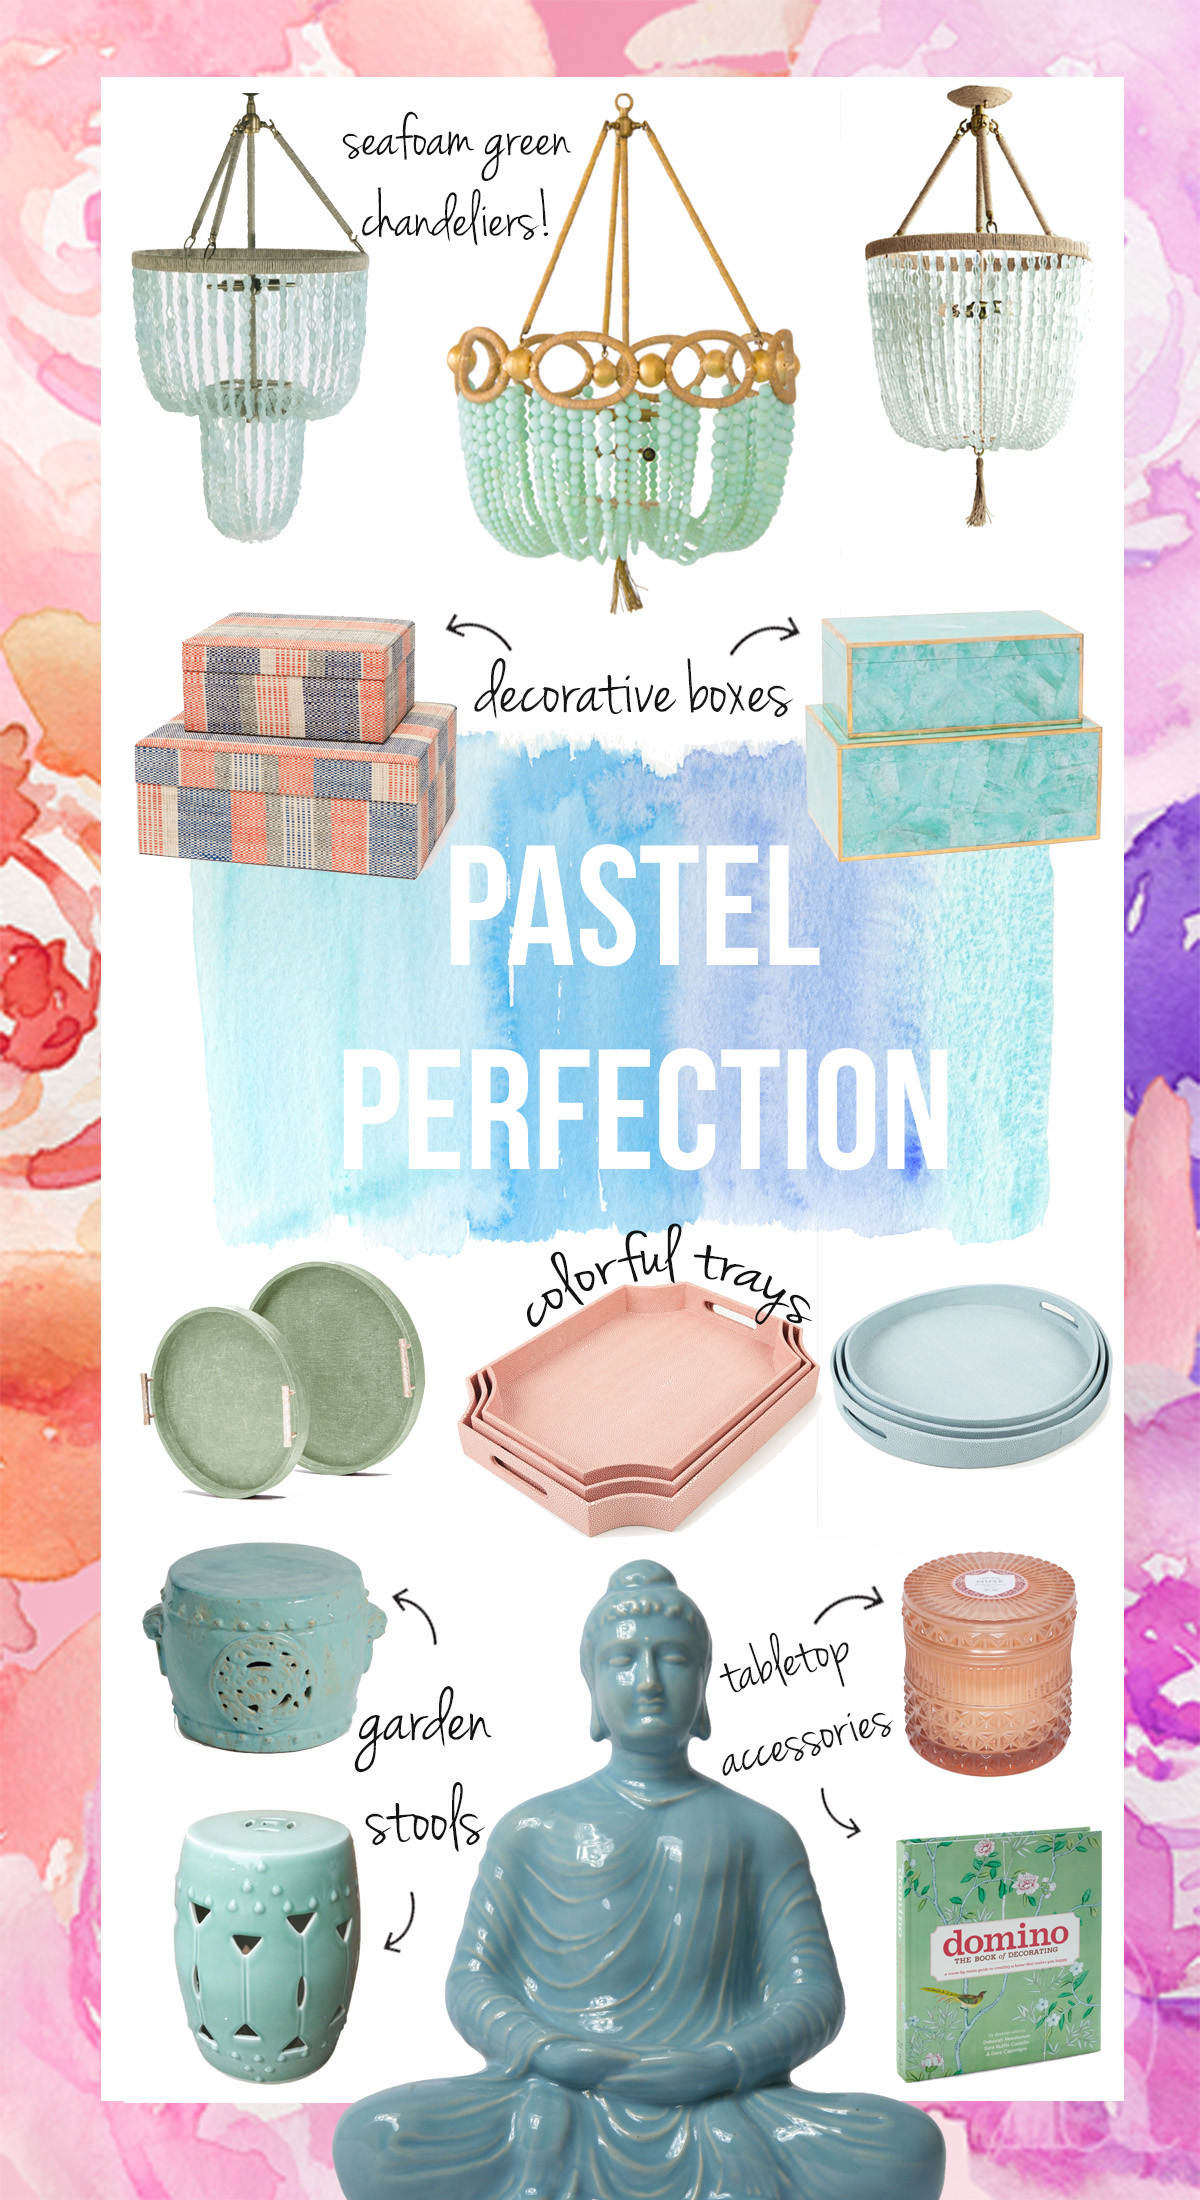 PastelPerfection